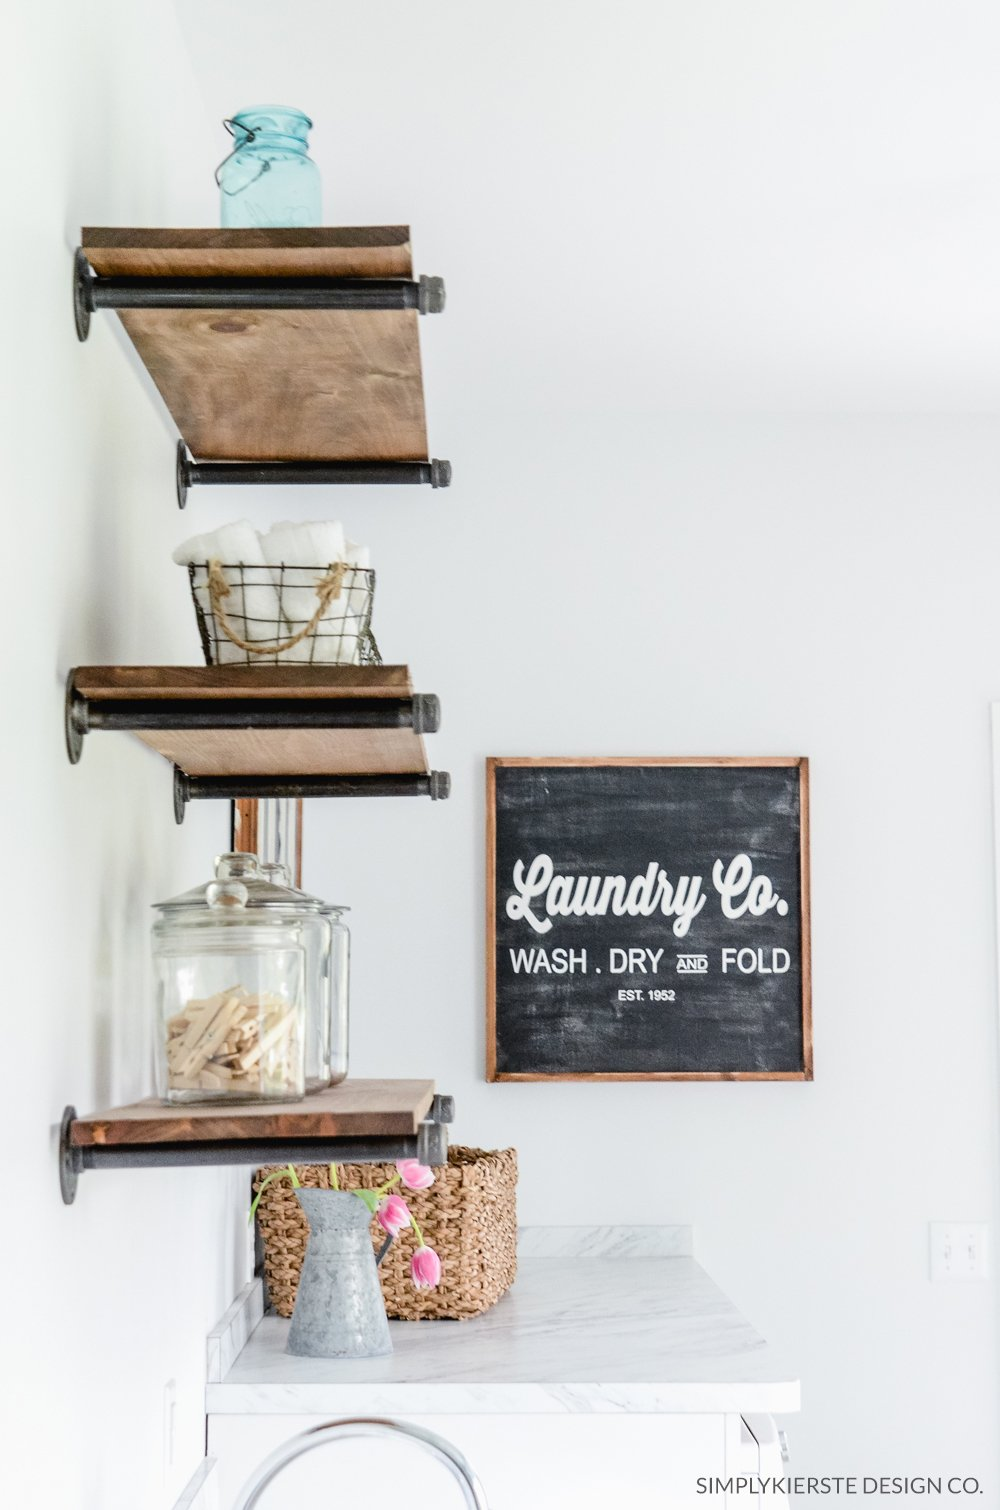 Easy DIY Farmhouse Shelves - Simply Kierste Design Co.